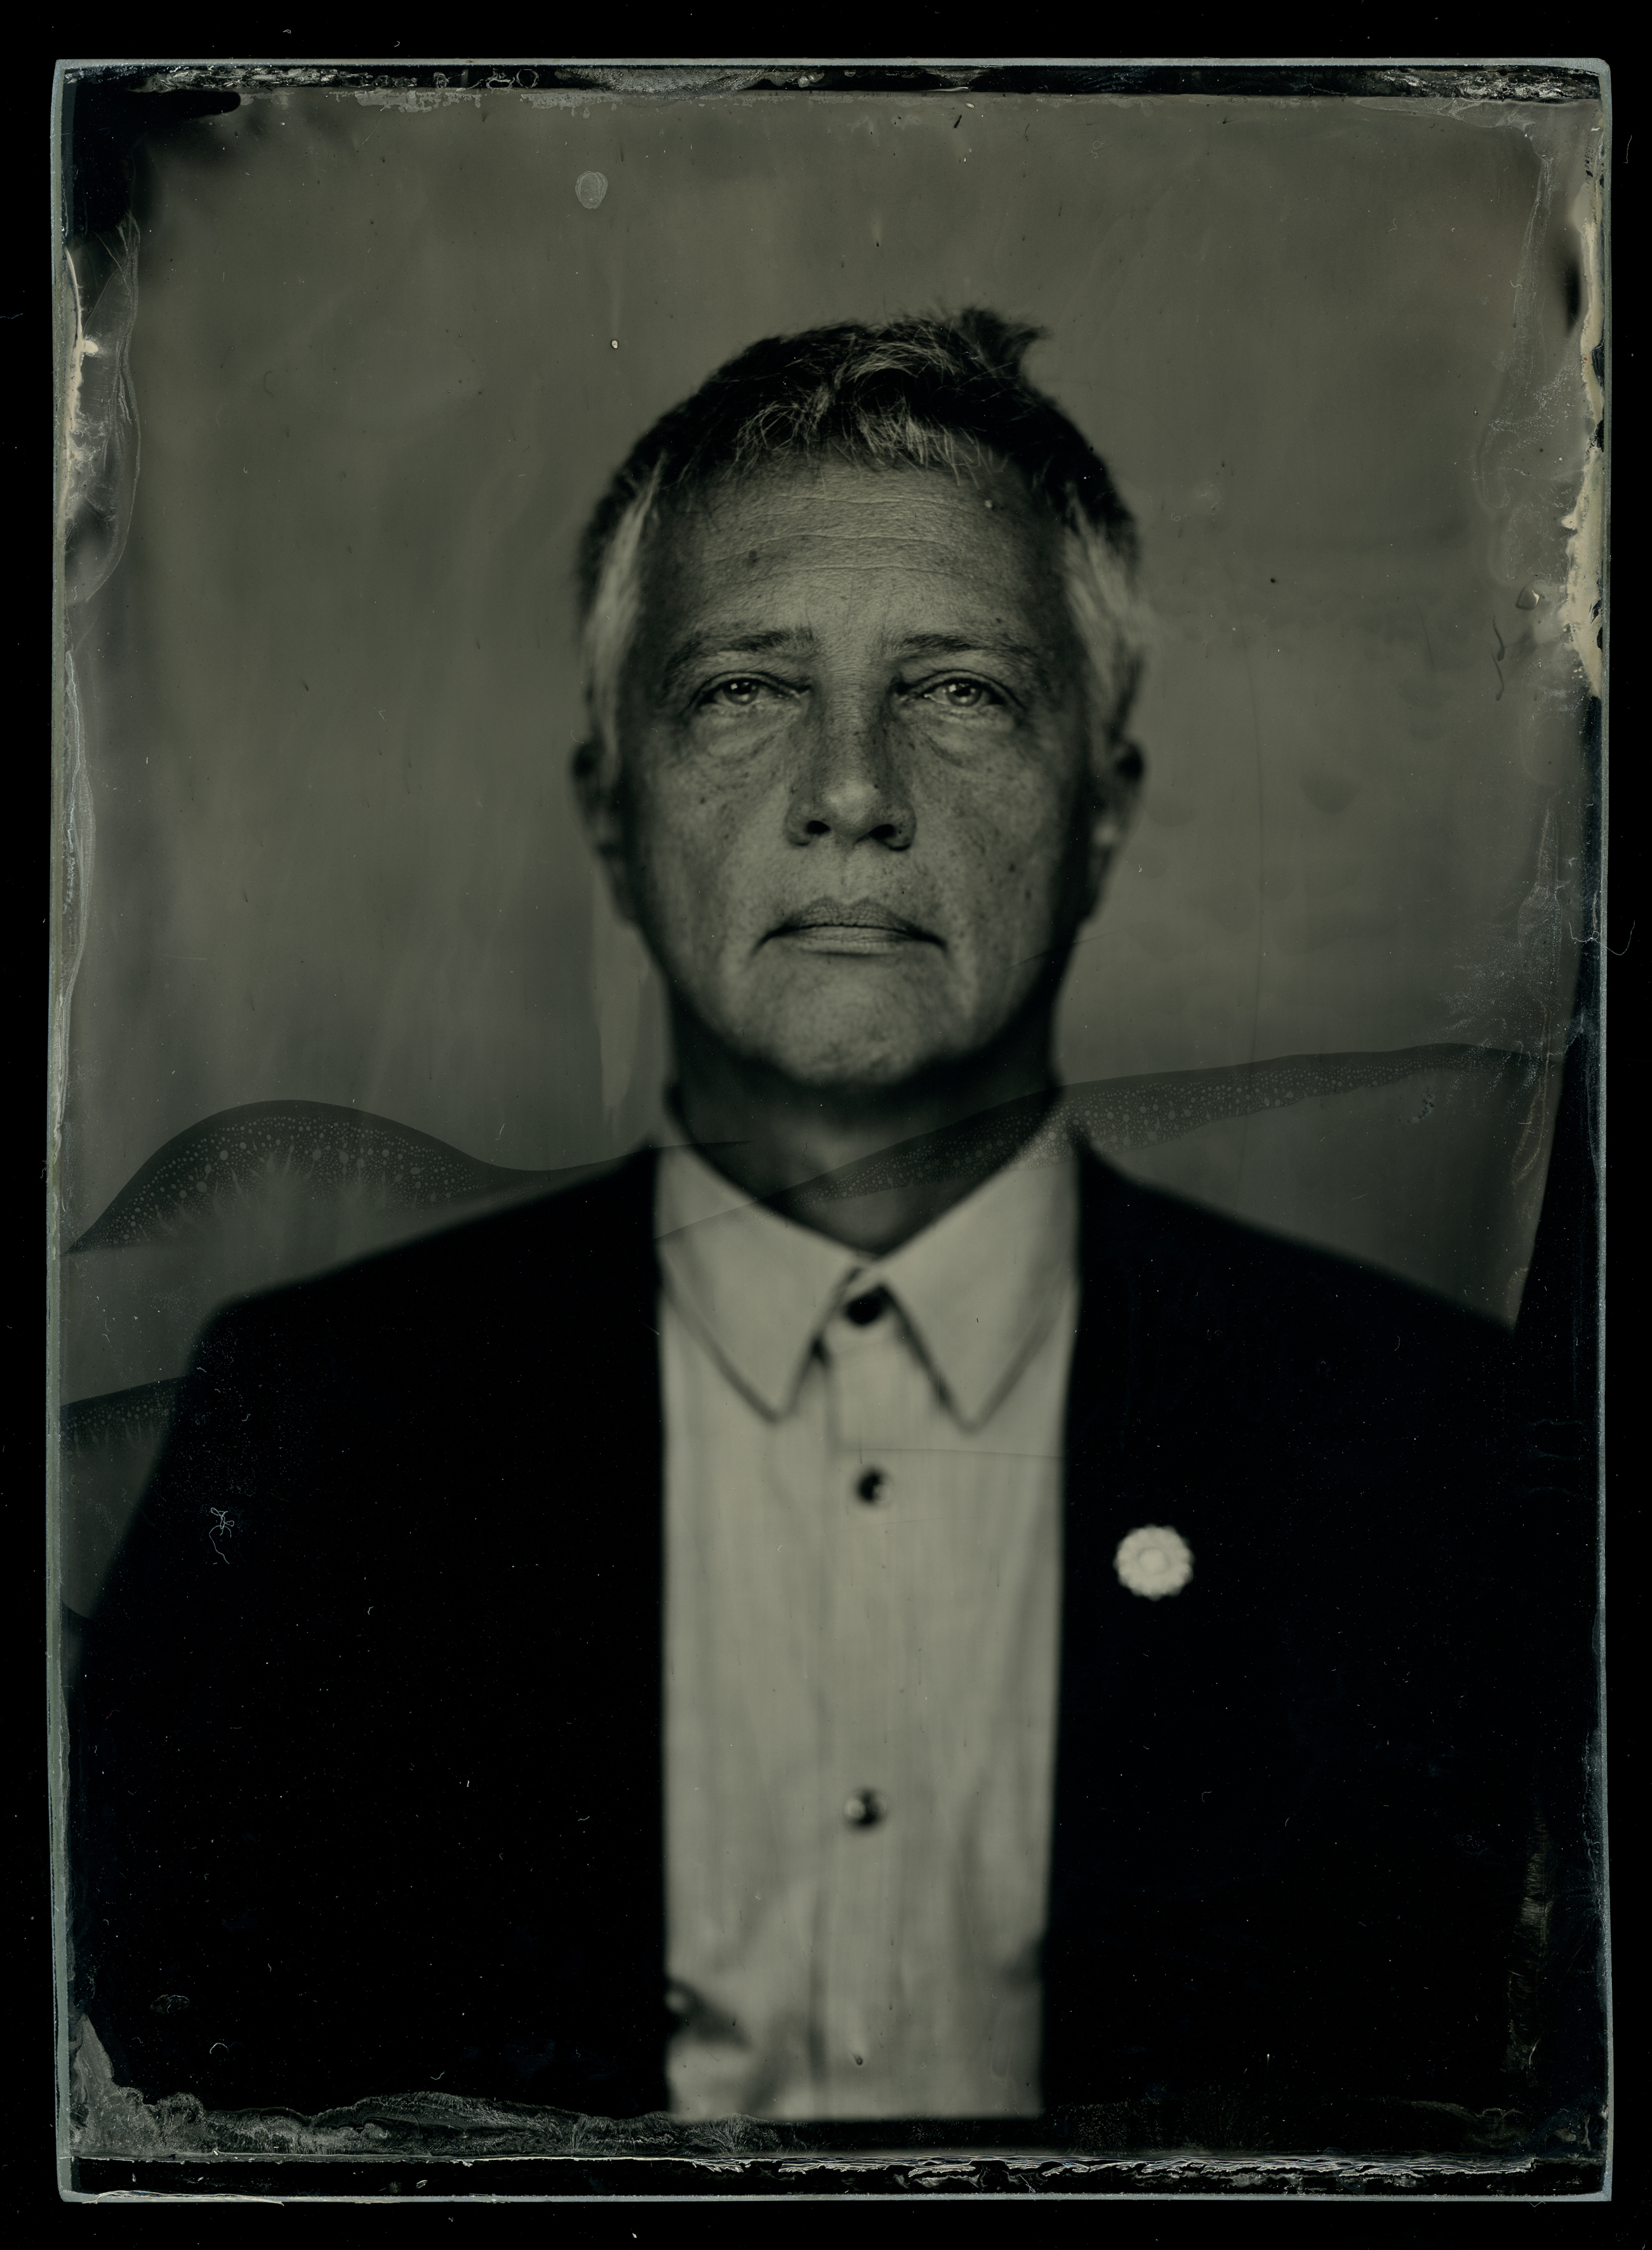 dejan-krsic-wetplate1-frobert-gojevic-copy